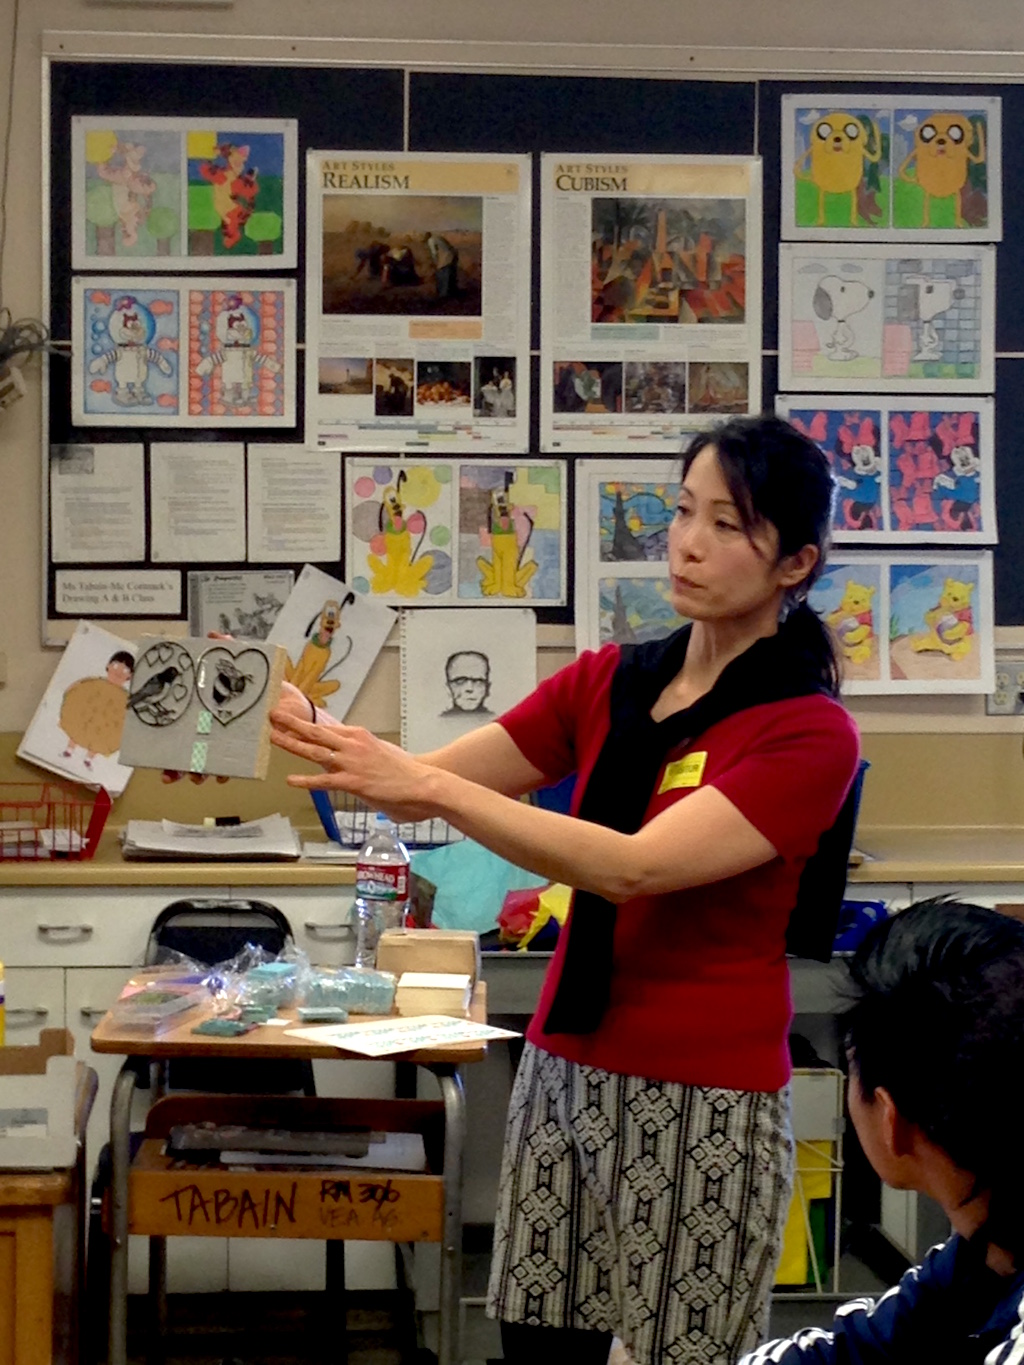 Yamamoto teaches local Van Nuys High School students about carved wood block traditions and printmaking.